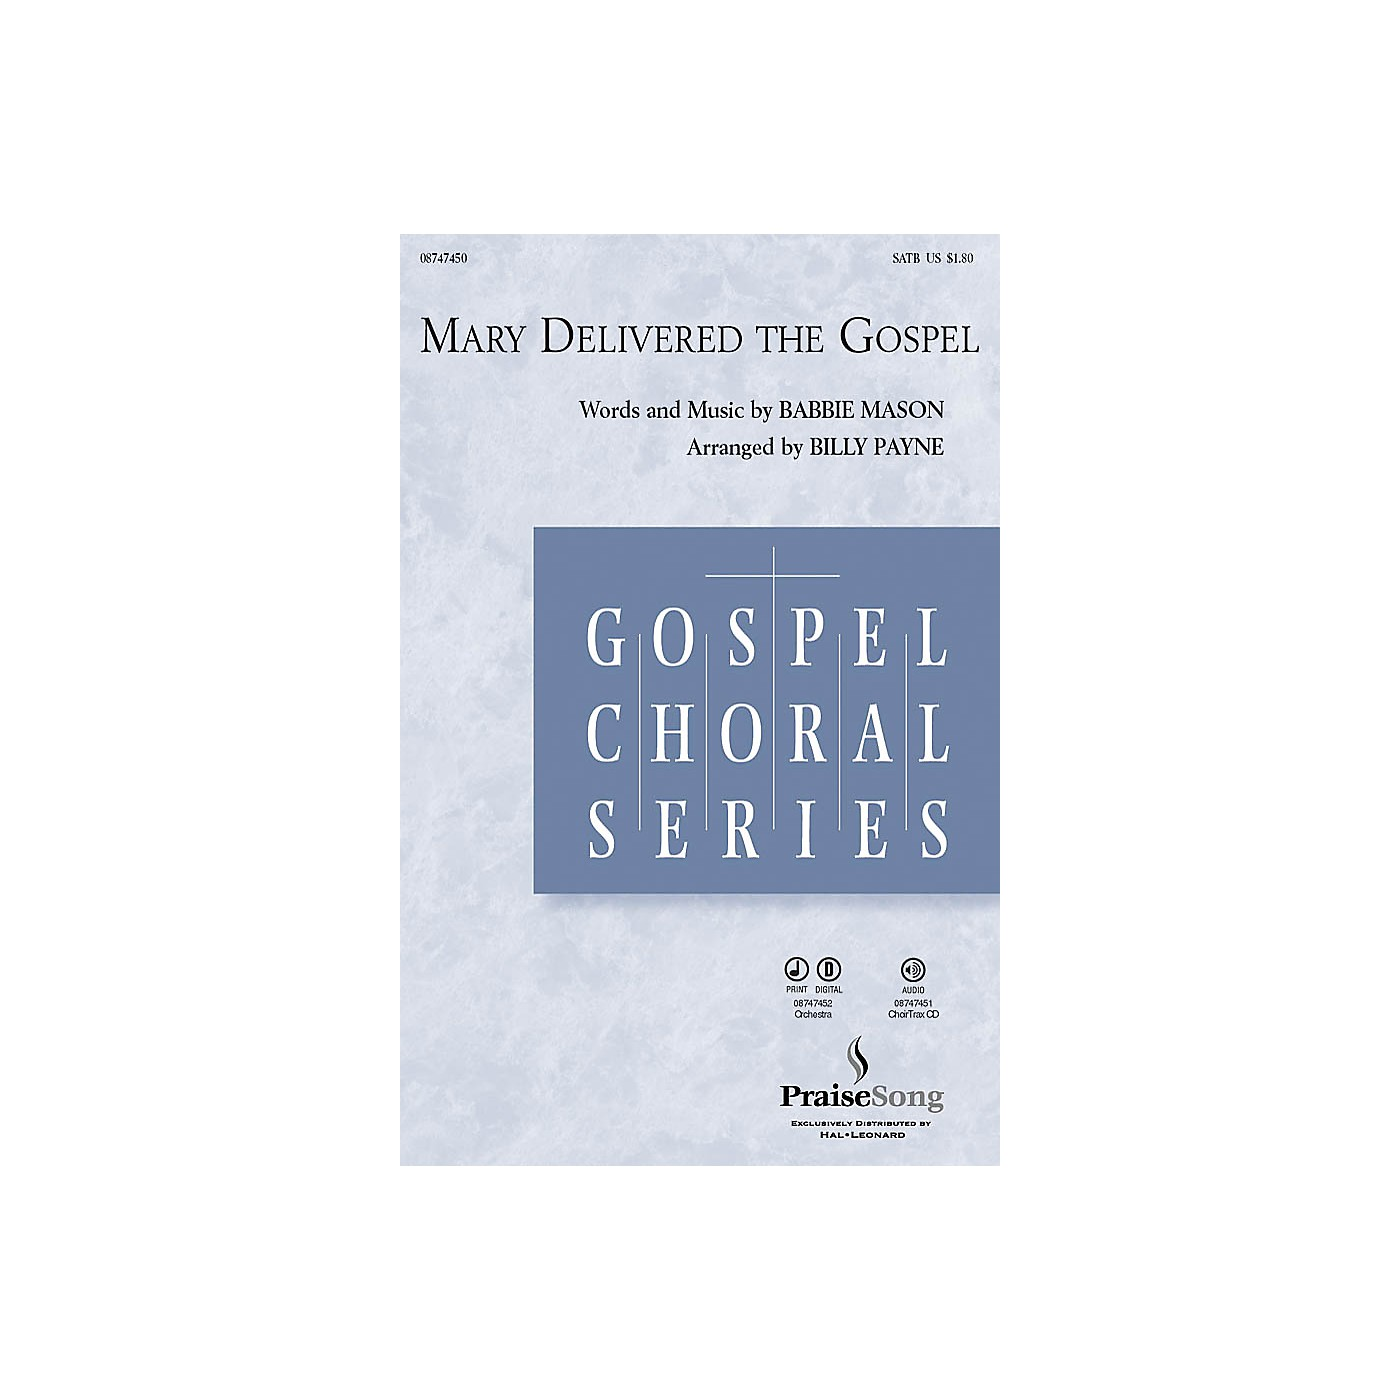 Hal Leonard Mary Delivered the Gospel IPAKCO Arranged by Billy Payne thumbnail